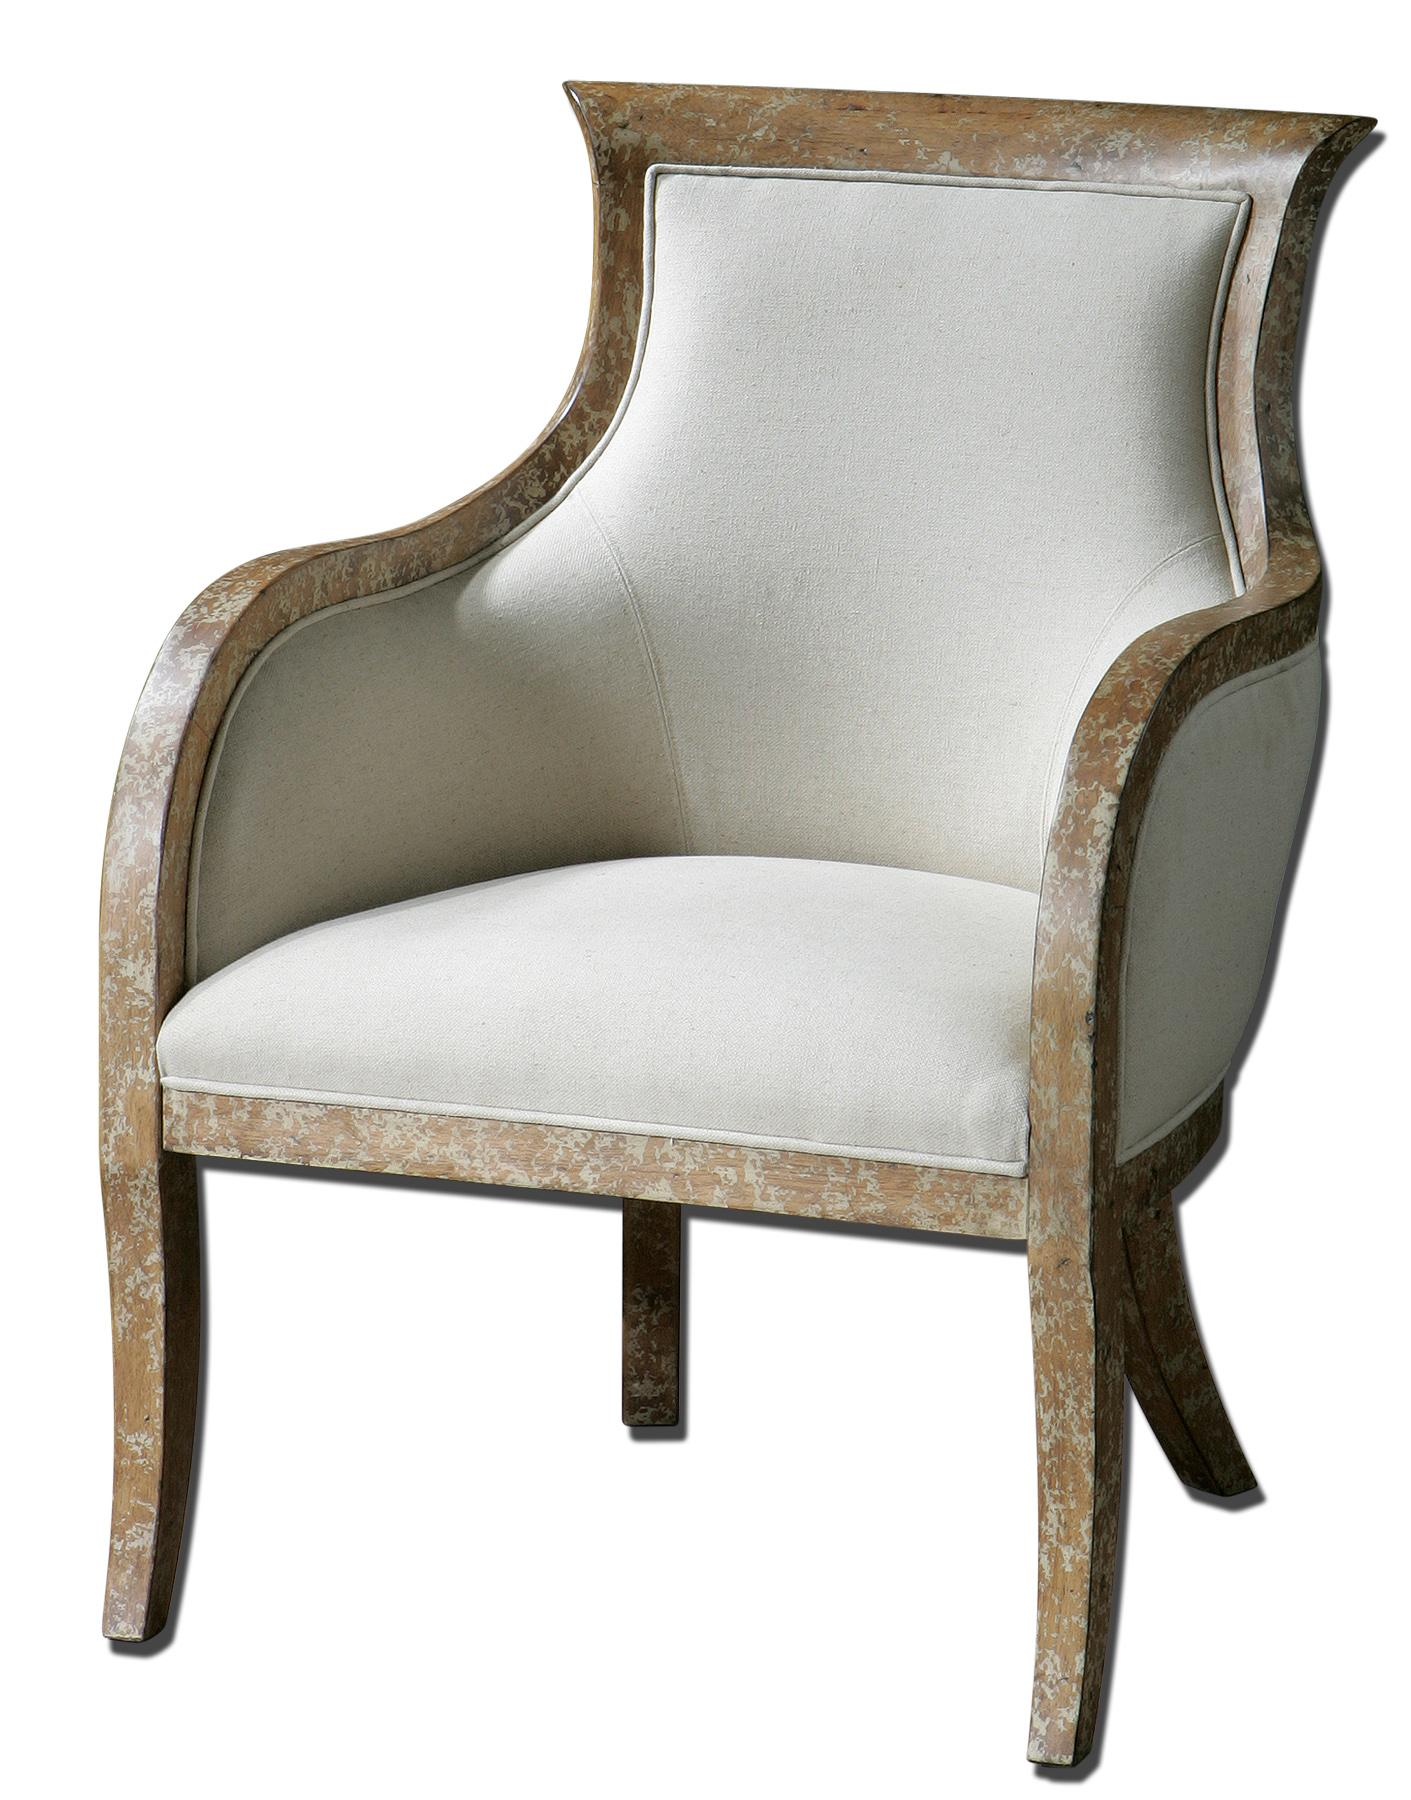 Accent Furniture - Accent Chairs Quintus Armchair by Uttermost at Upper Room Home Furnishings